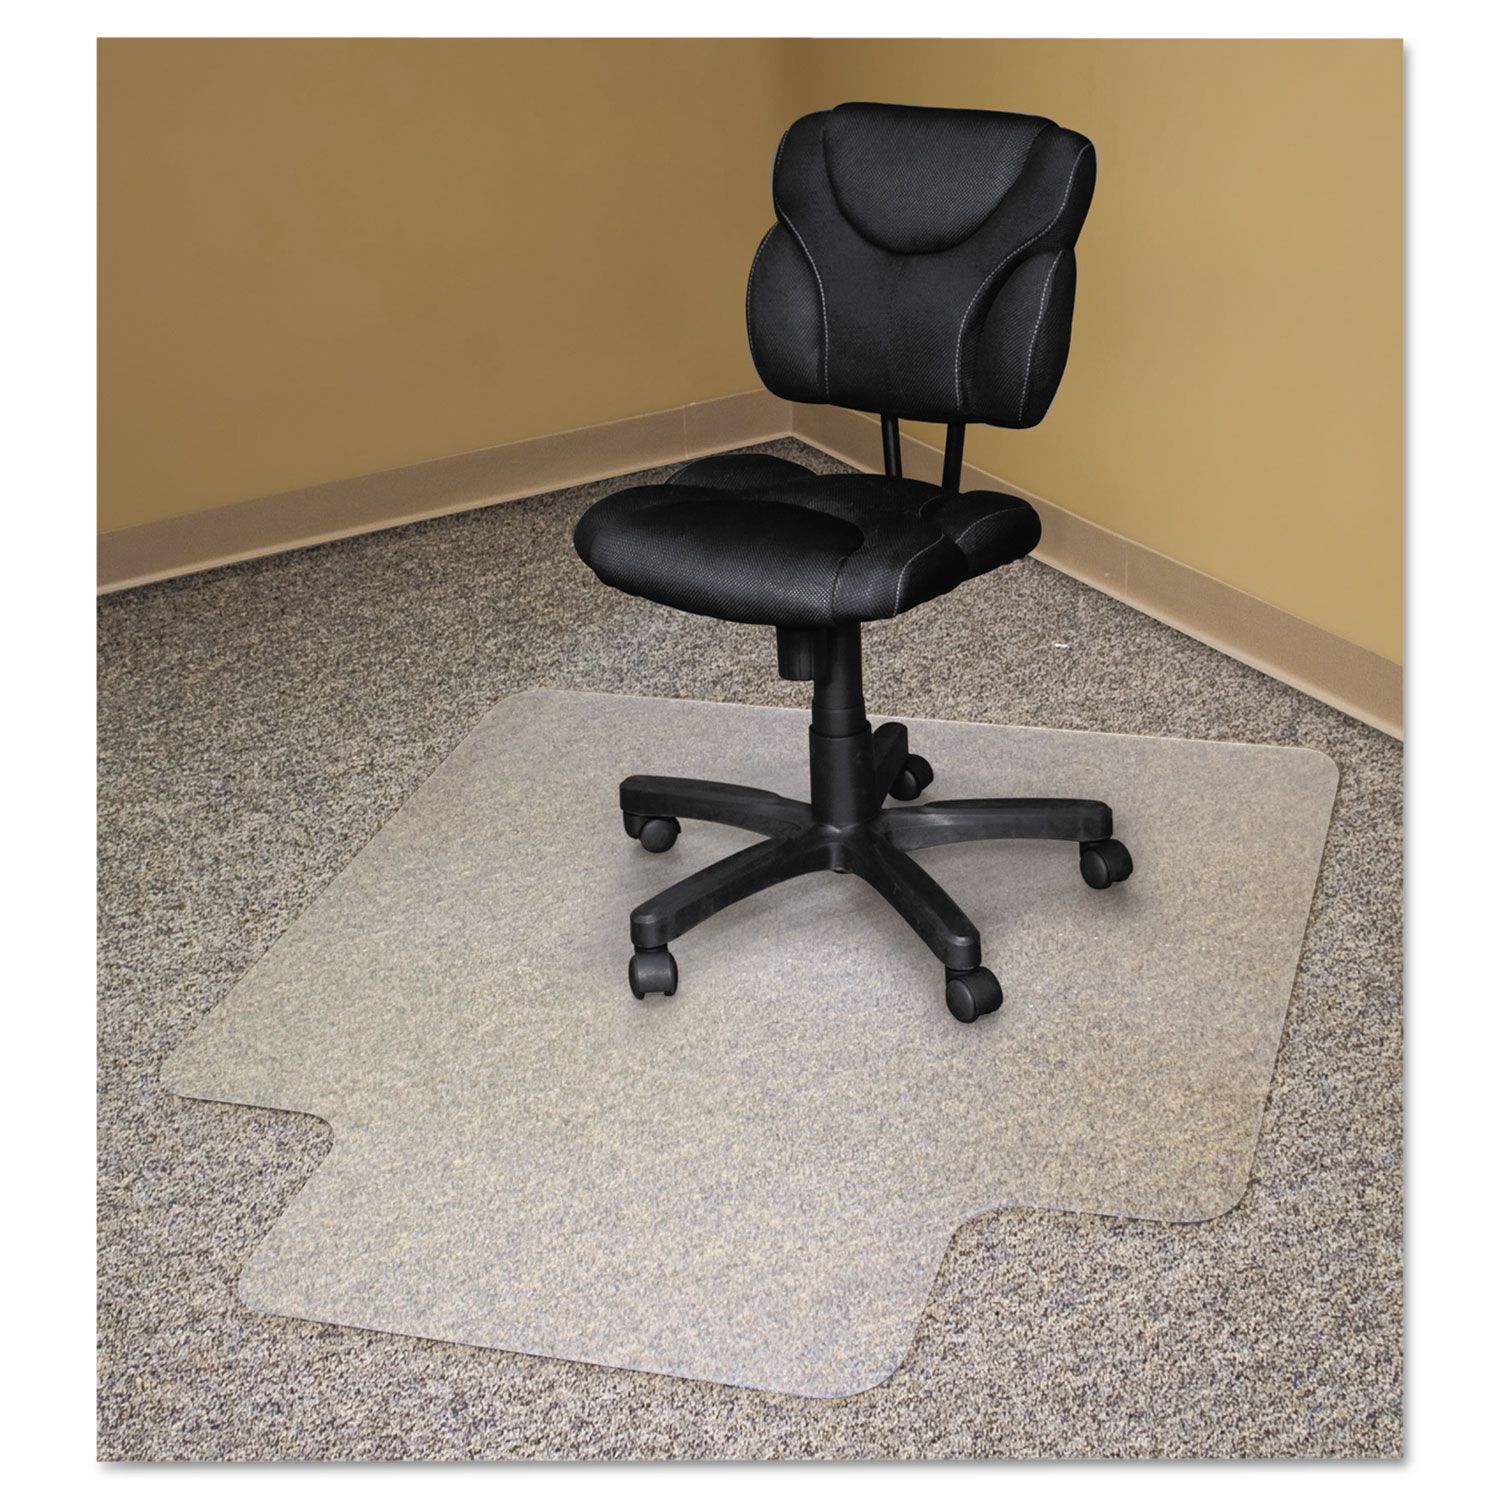 rolling chair mat for wood floors turquoise accent office supplies mats